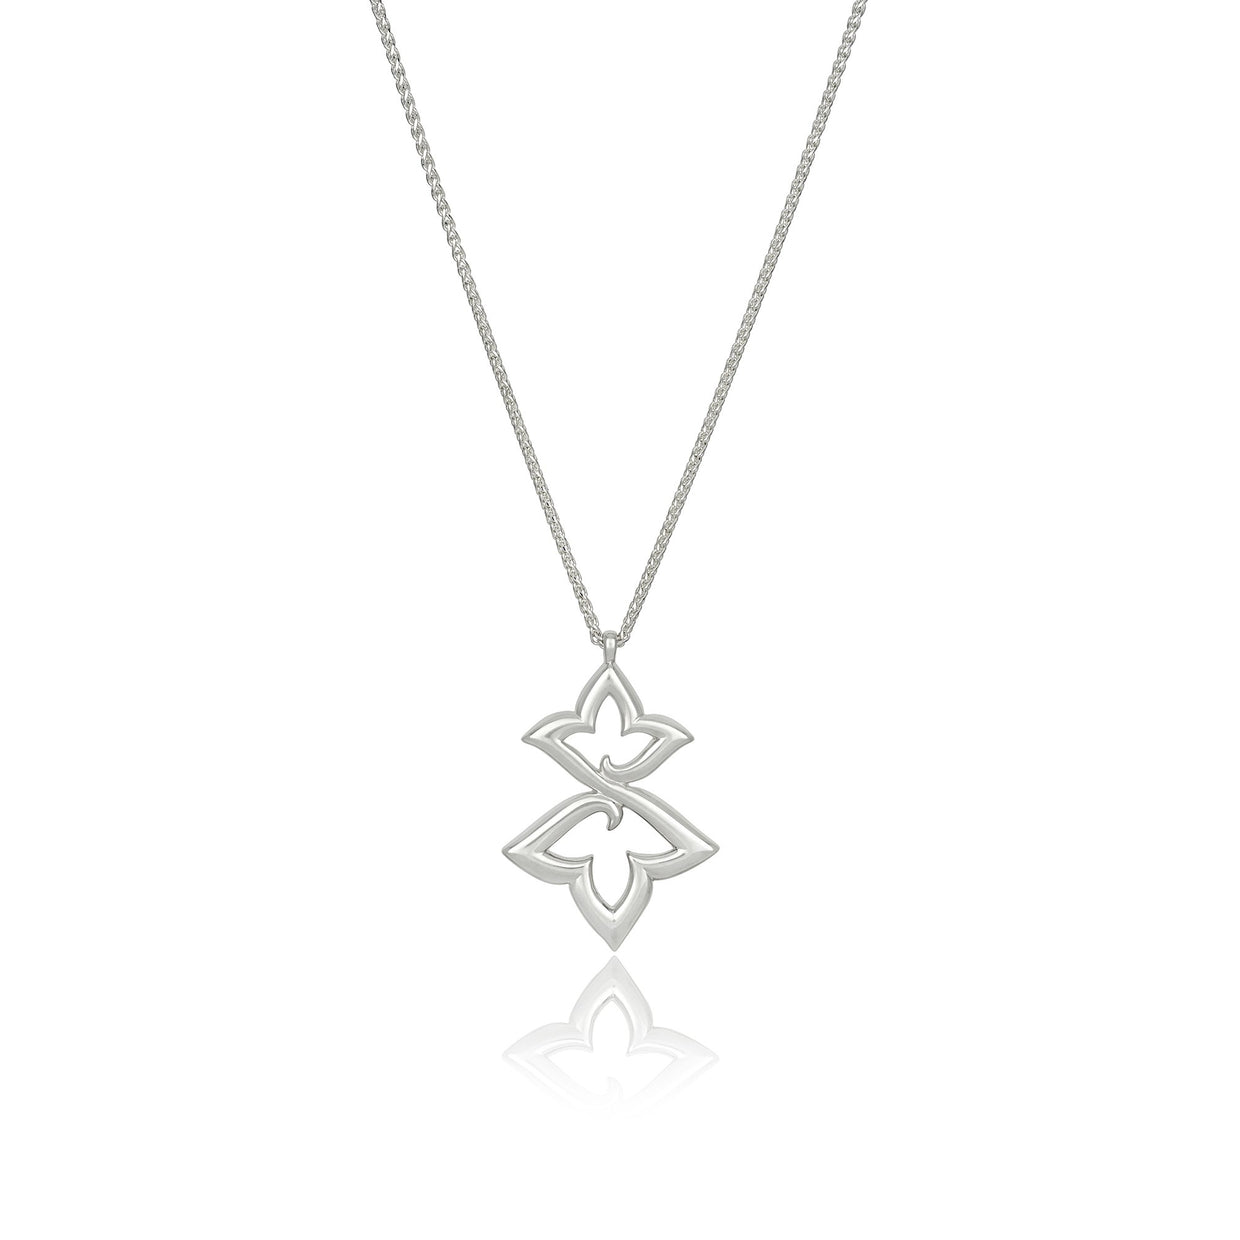 Lily II Double Pendant in Sterling Silver - Hamilton & Inches